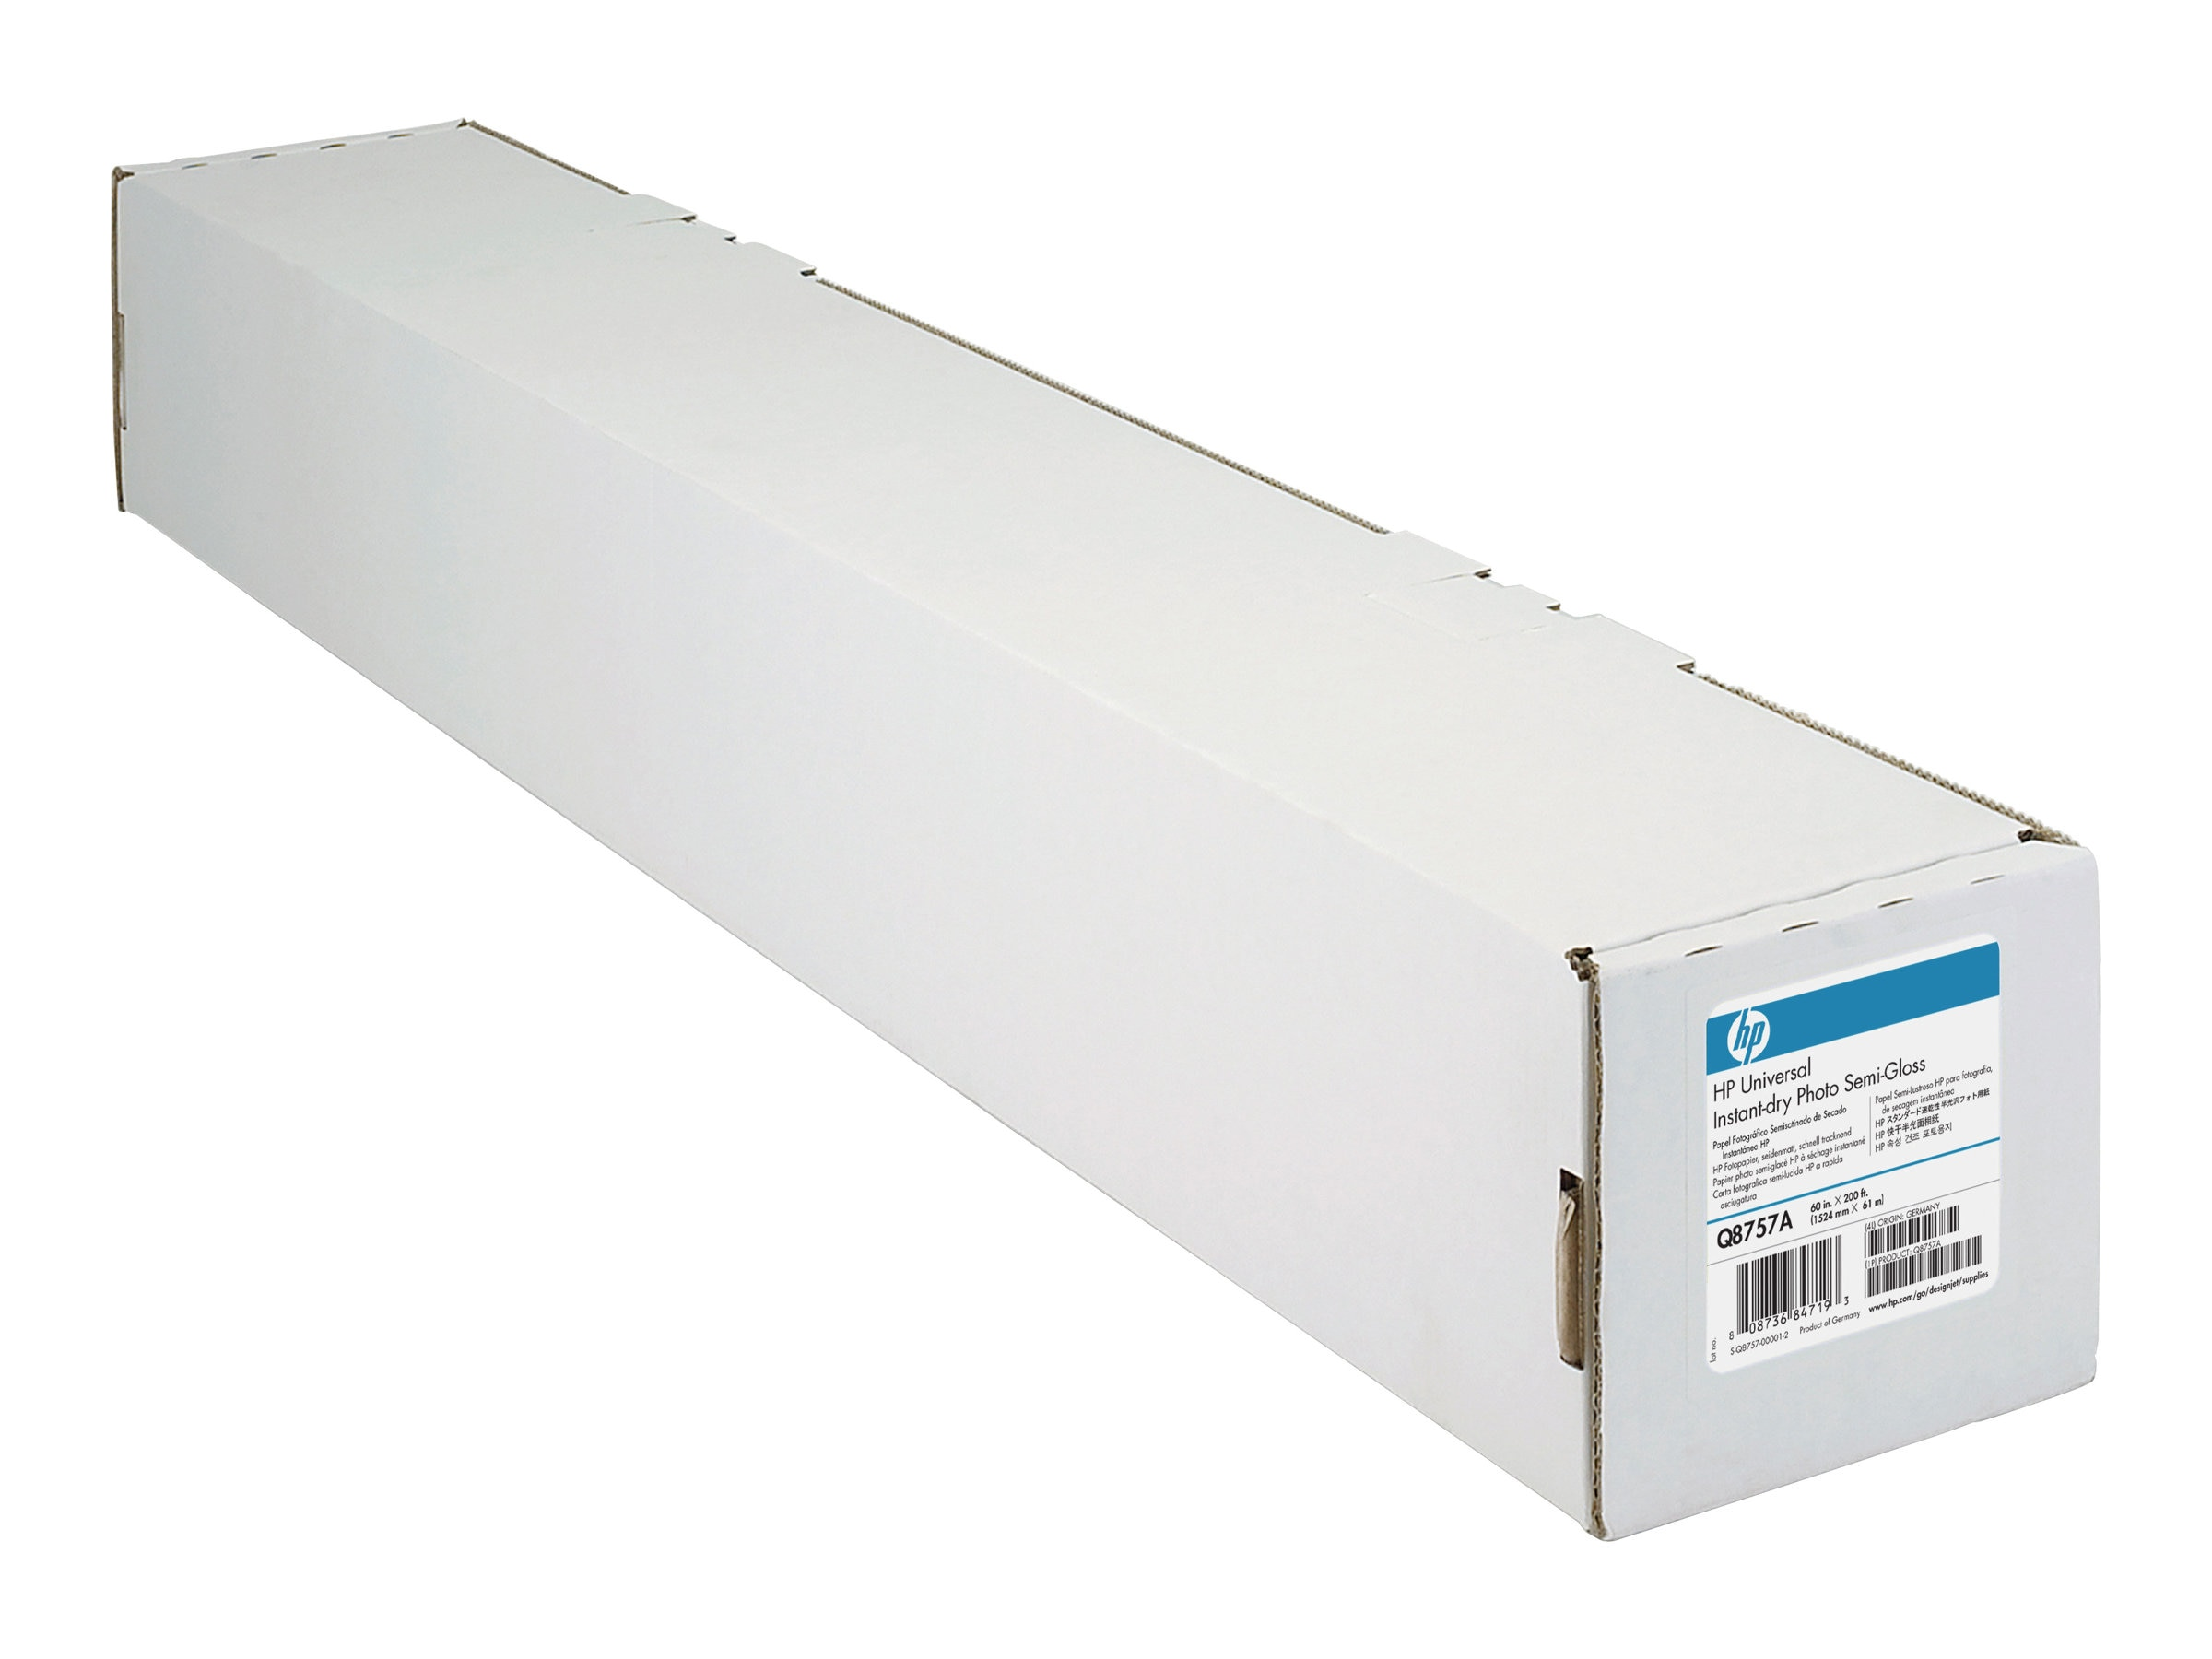 HP 60 x 200' Universal Instant Dry Semi-Gloss Photo Paper, Q8757A